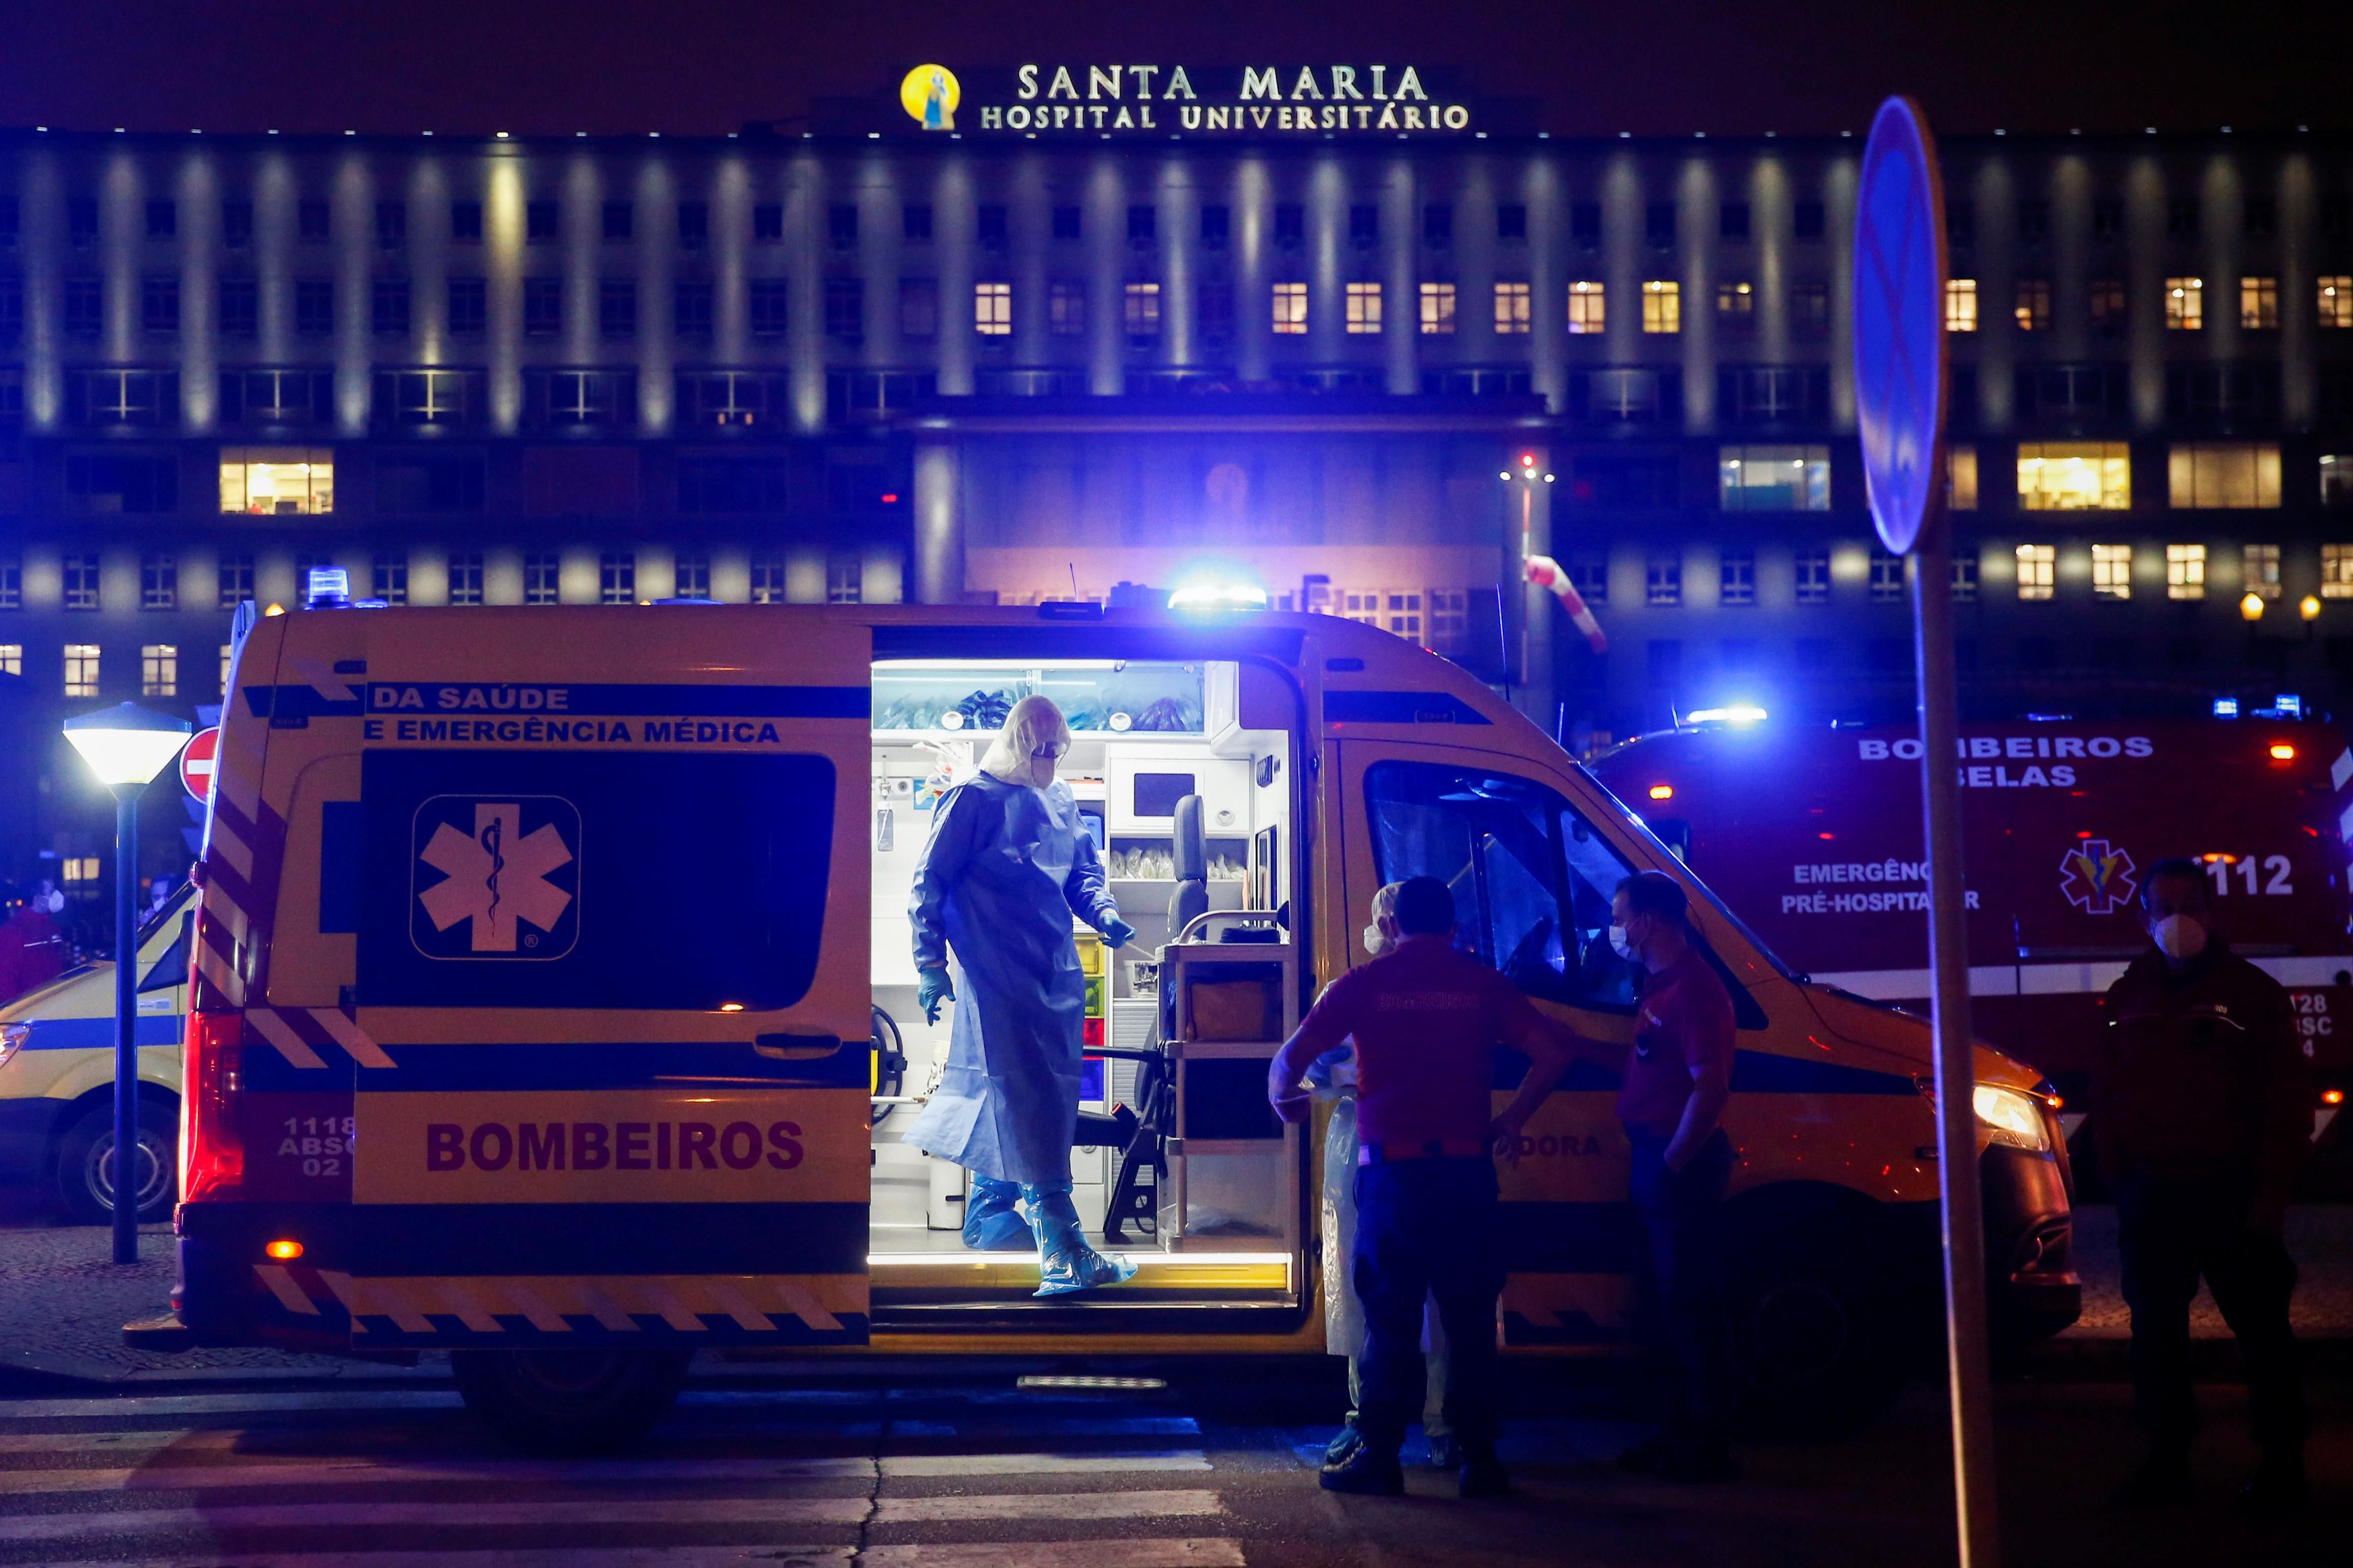 Medical personnel stand next to ambulances with COVID-19 patients as they wait in the queue at Santa Maria hospital, amid the coronavirus disease (COVID-19) pandemic in Lisbon, Portugal, January 27, 2021